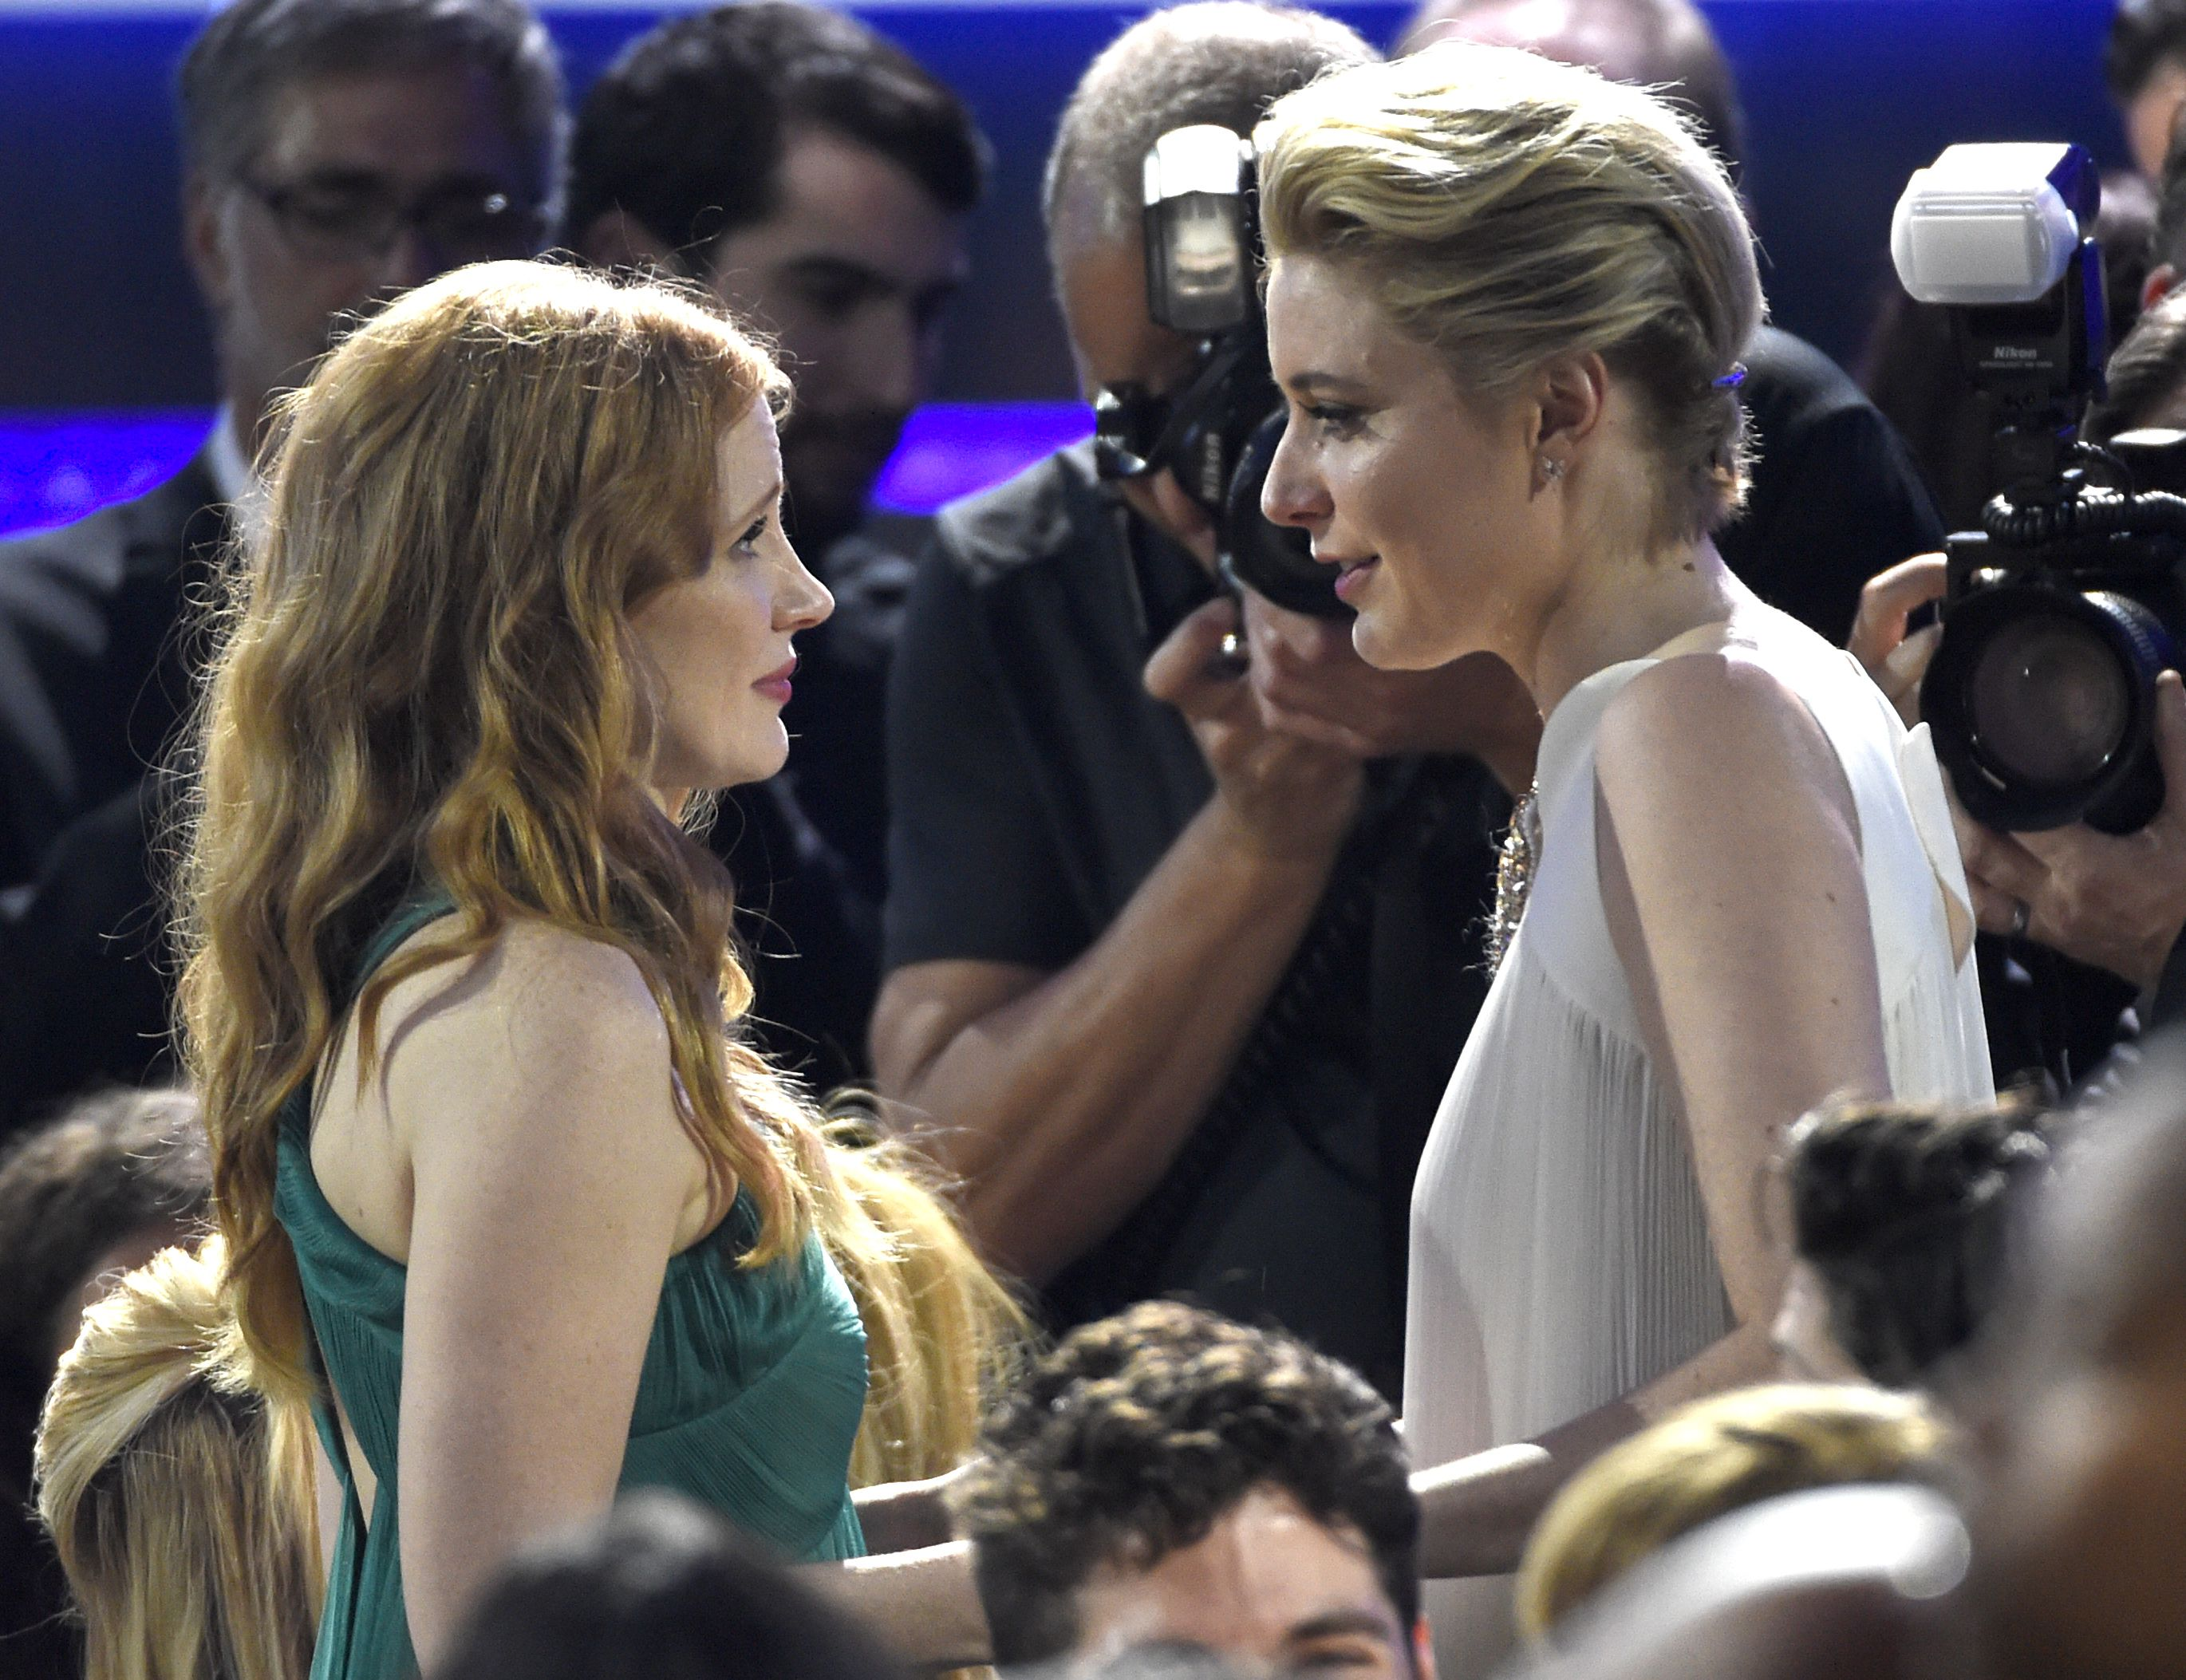 Jessica Chastain, Greta Gerwig. Jessica Chastain, left, and Greta Gerwig speak in the audience at the 23rd annual Critics' Choice Awards at the Barker Hangar, in Santa Monica, Calif23rd Annual Critics' Choice Awards - Show, Santa Monica, USA - 11 Jan 2018